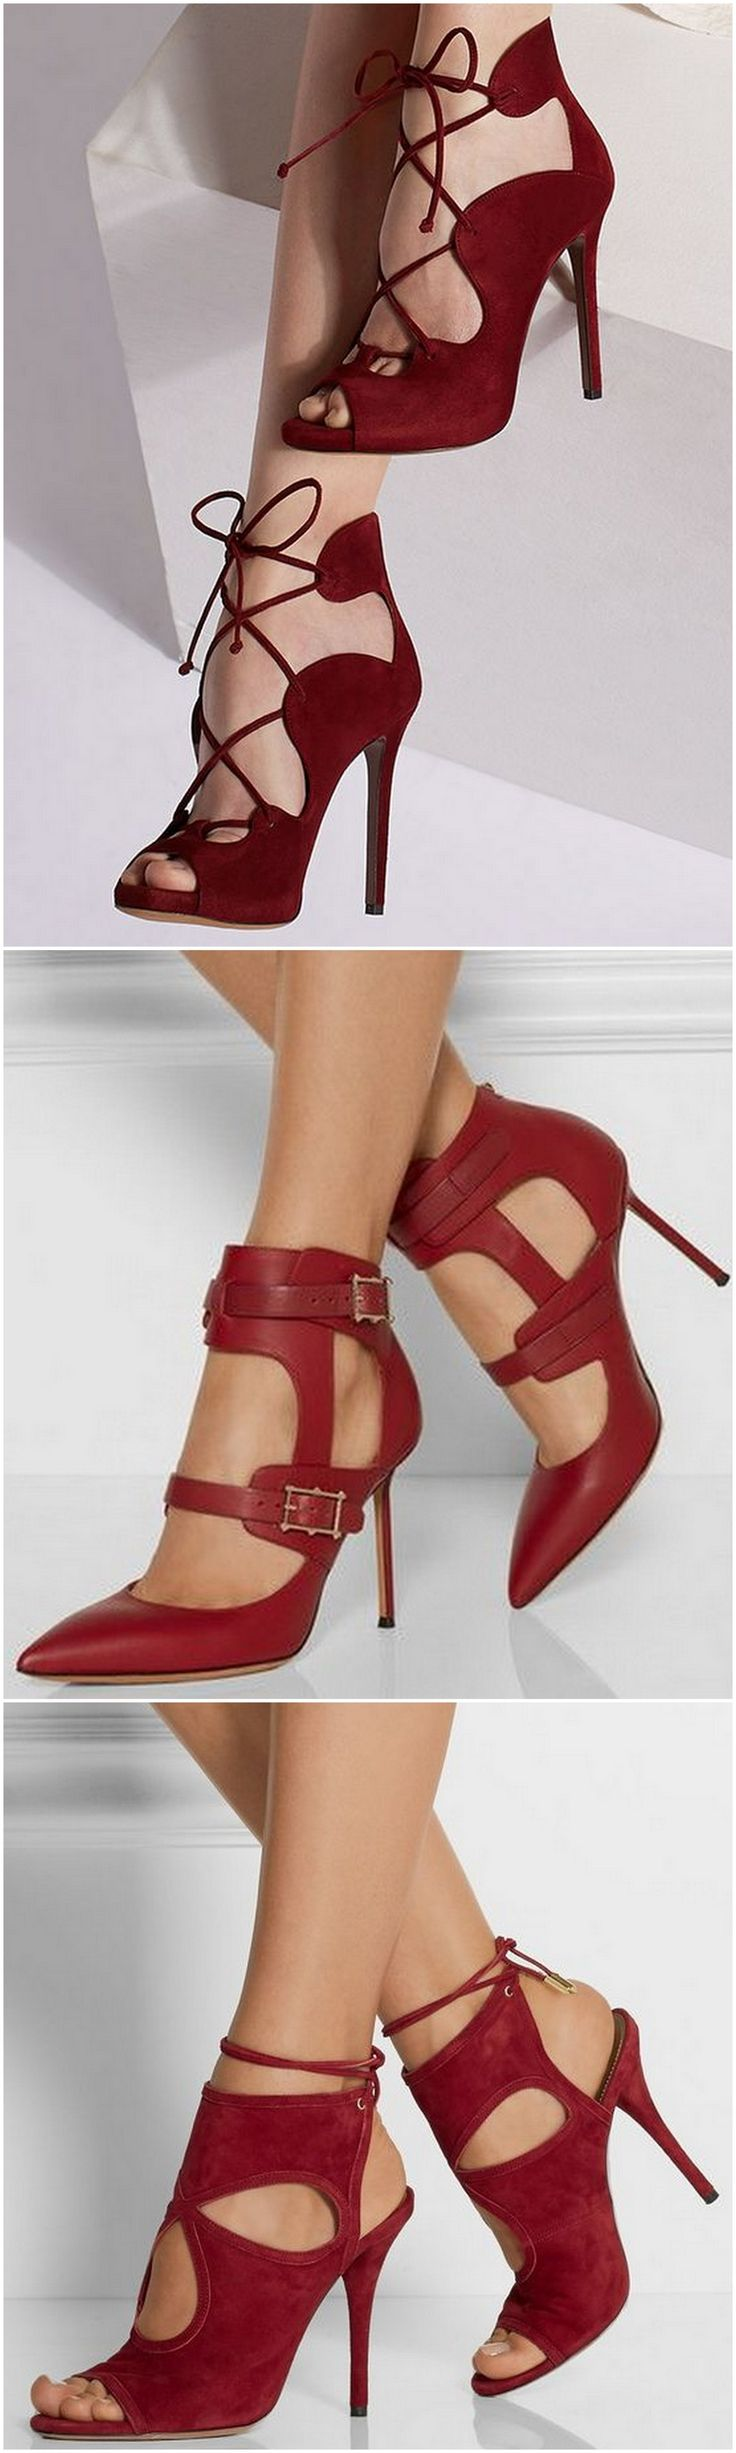 @styleestate designer women's shoes and heels on Pinterest